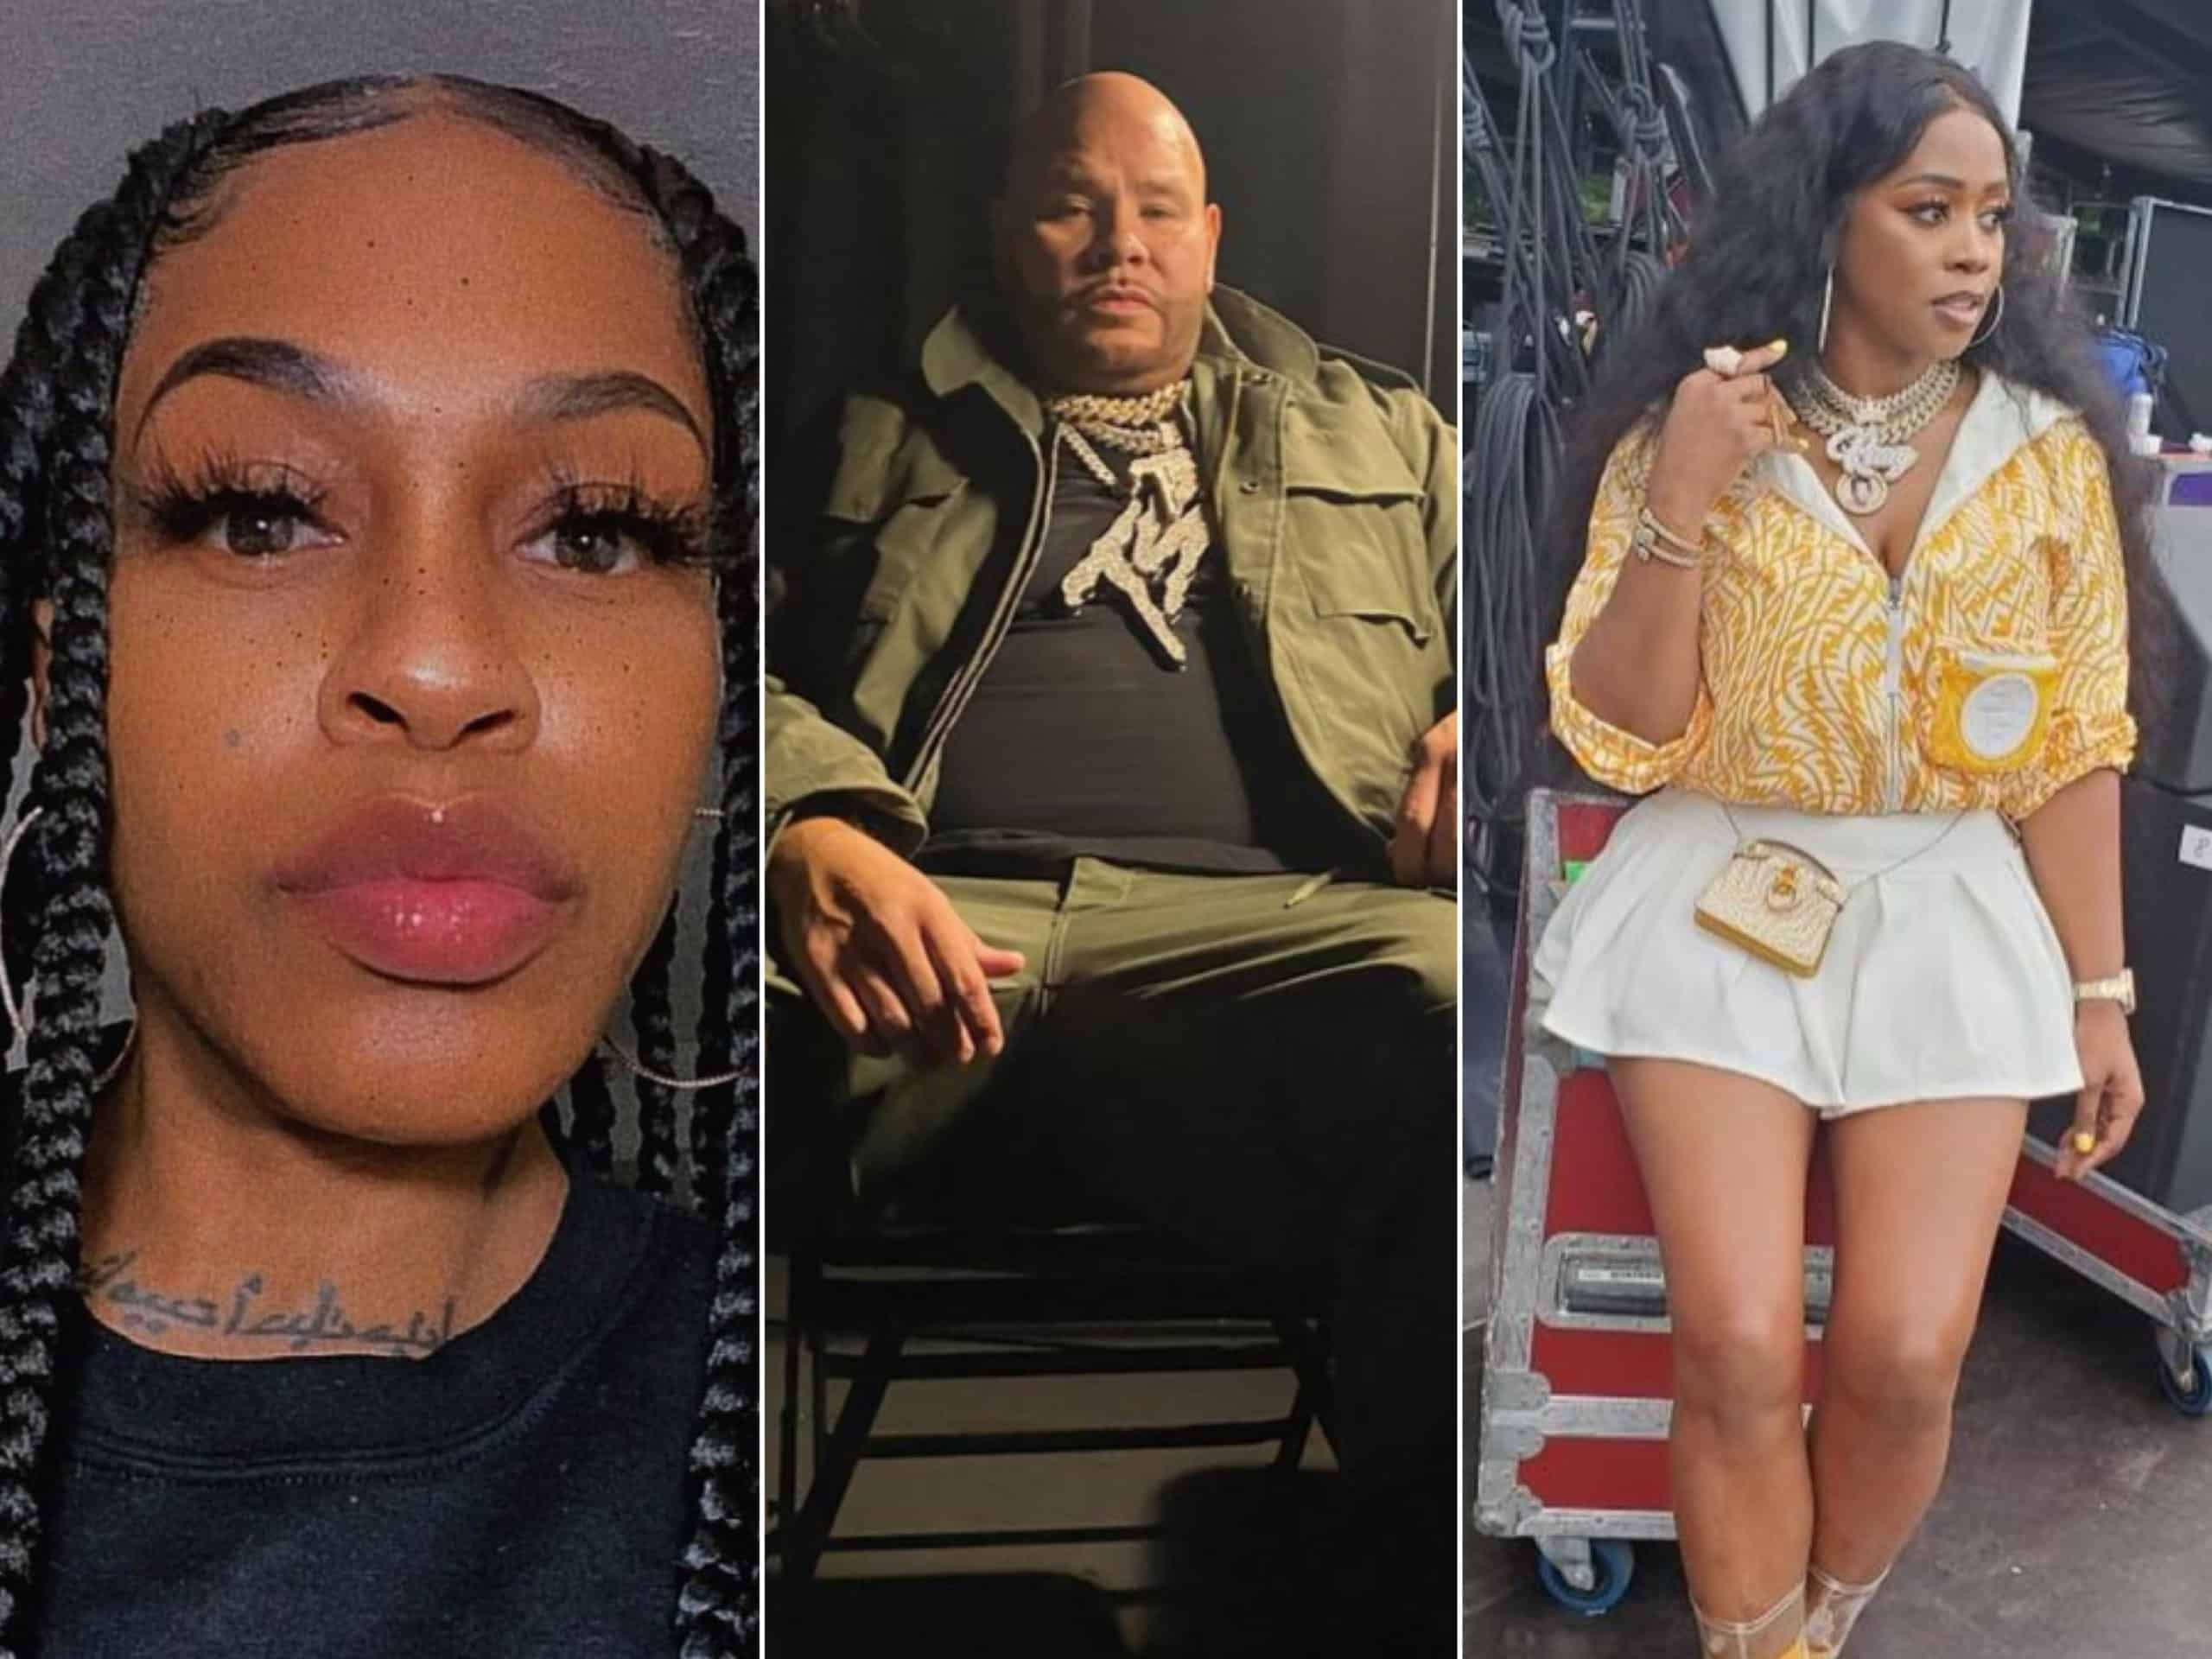 Lil Mo called Fat Joe out for a genuine apology after his comment during Verzuz battle and Remy Ma jumped in to defend him.